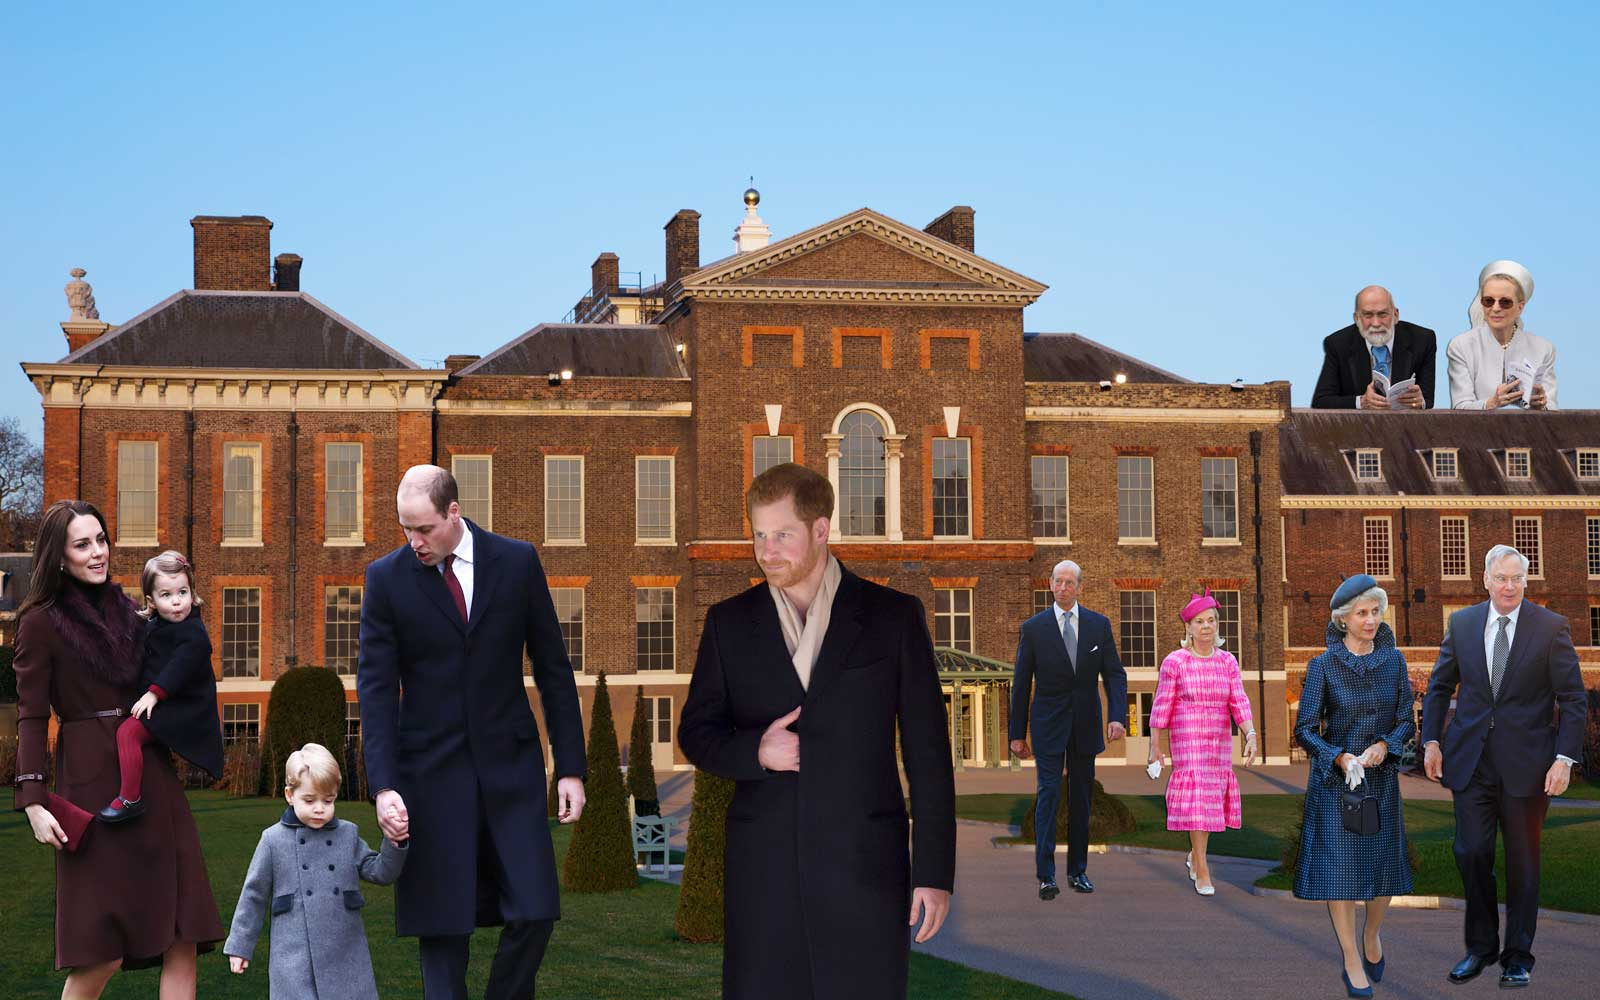 Royal Family members who live at Kensington Palace (photoshopped)